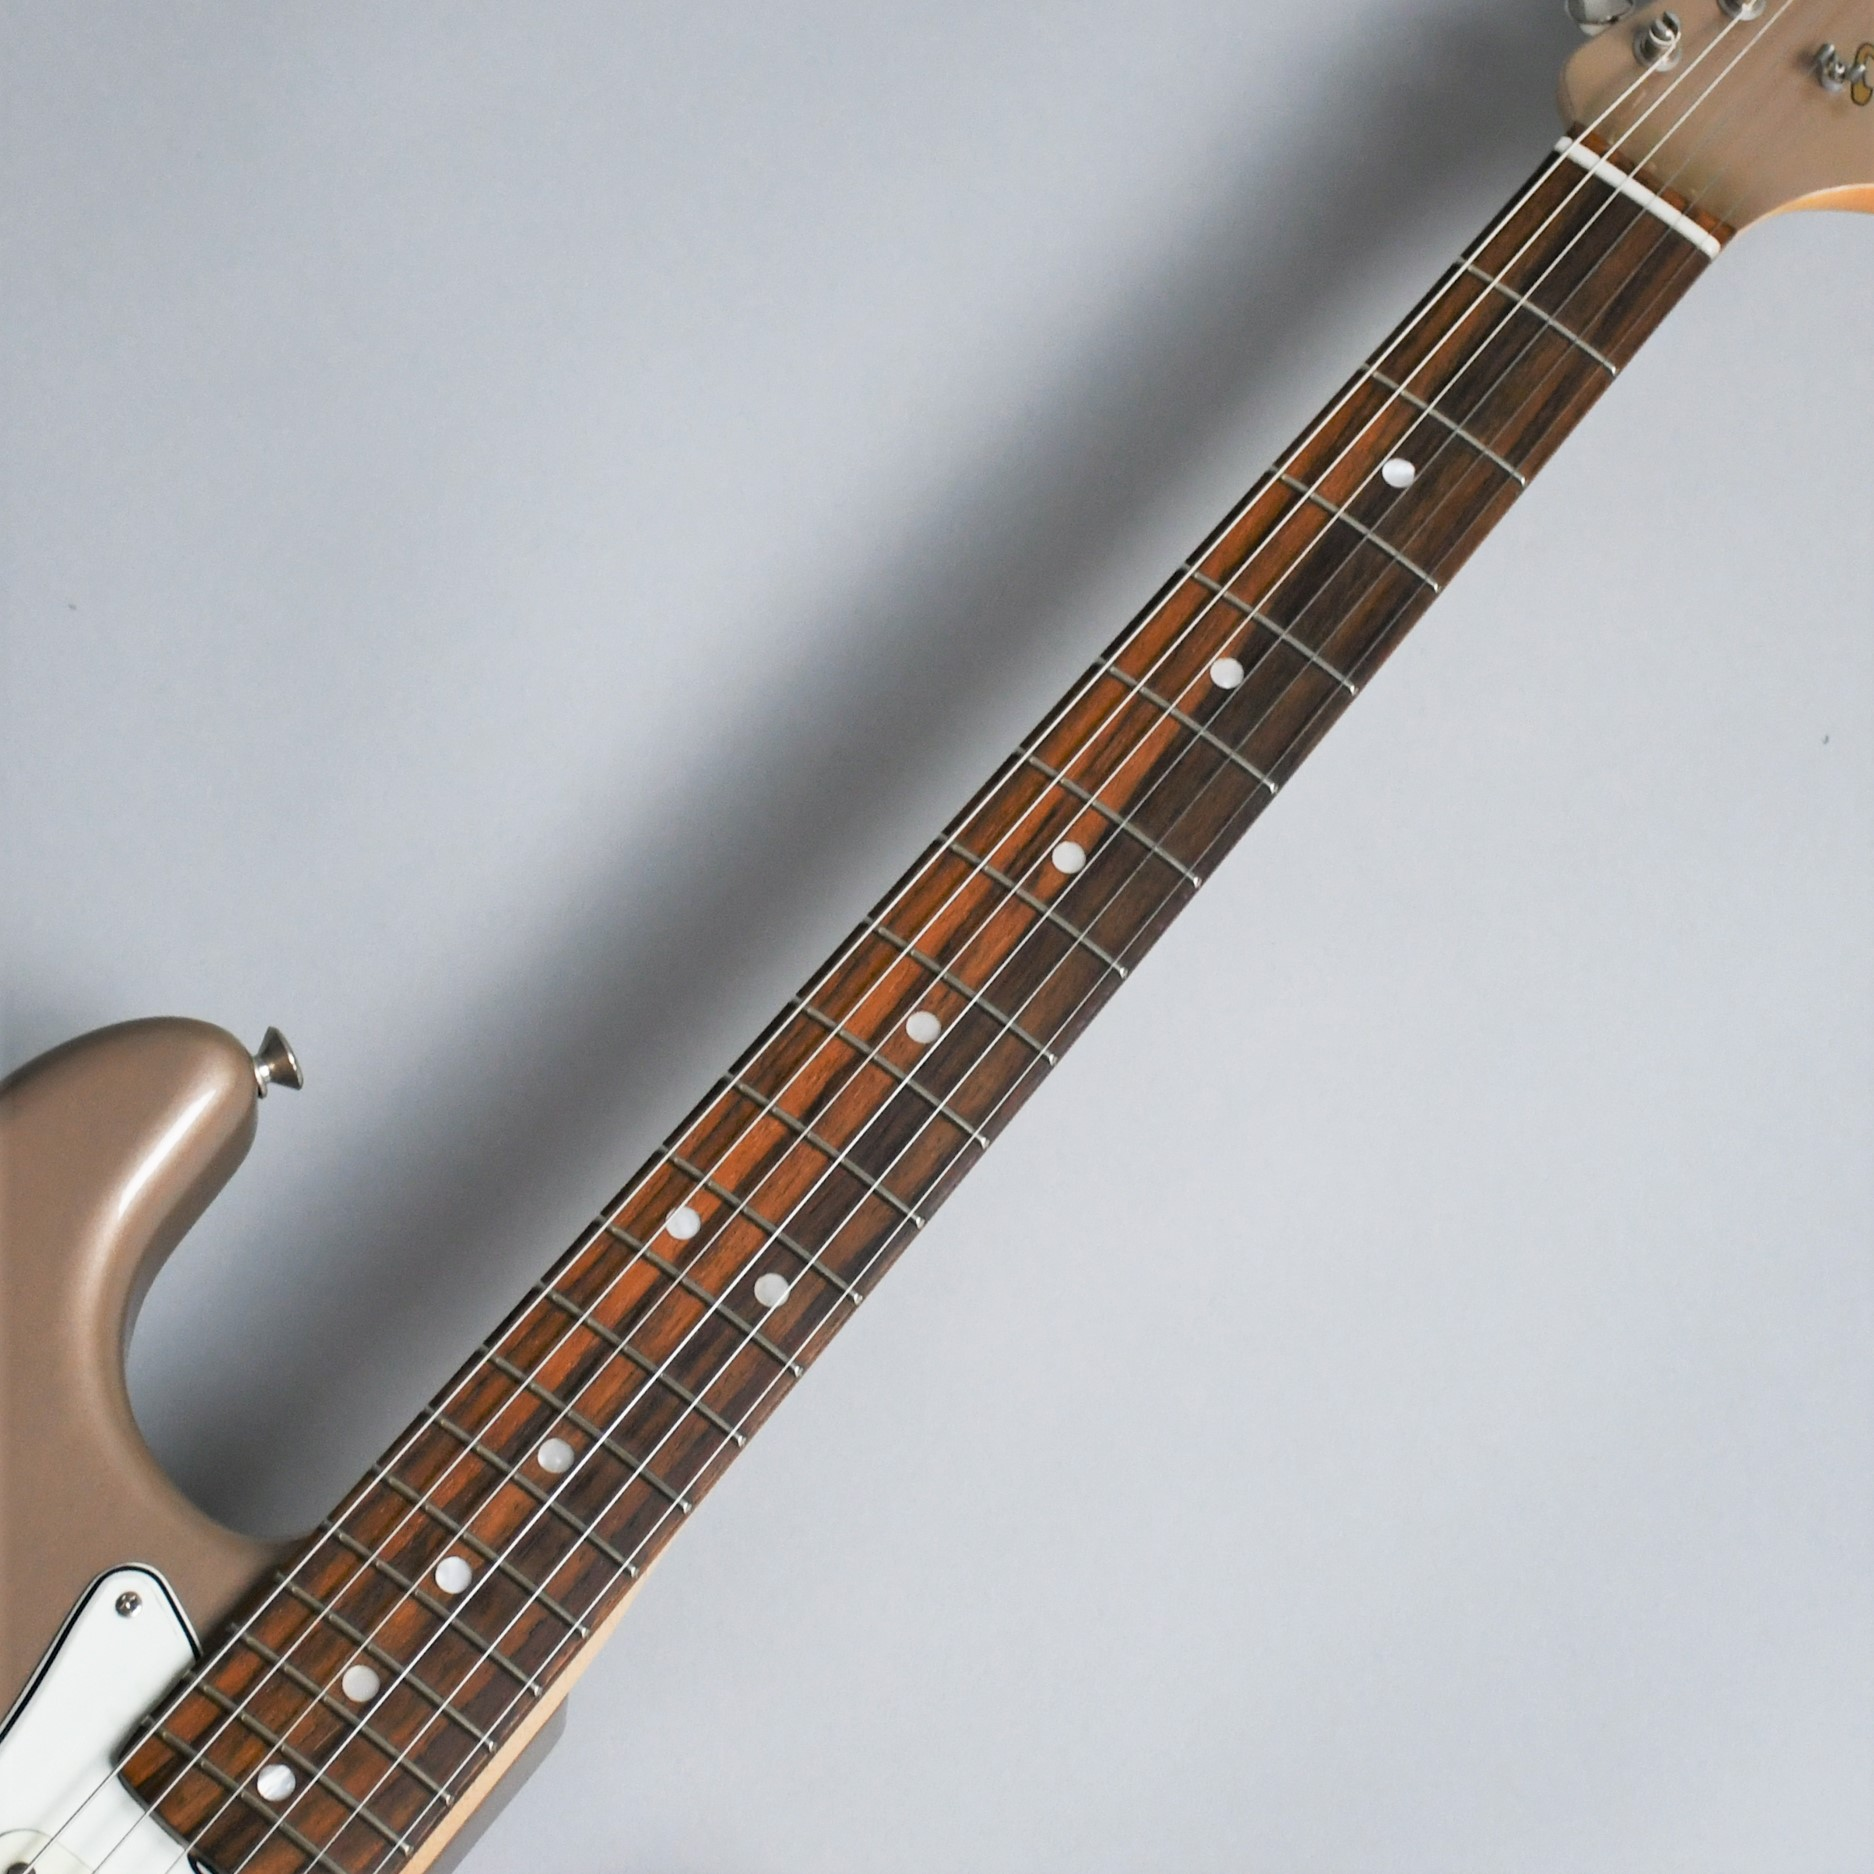 American Vintage 65 Stratocaster Round-Lam Rosewood Fingerboardのヘッド裏-アップ画像